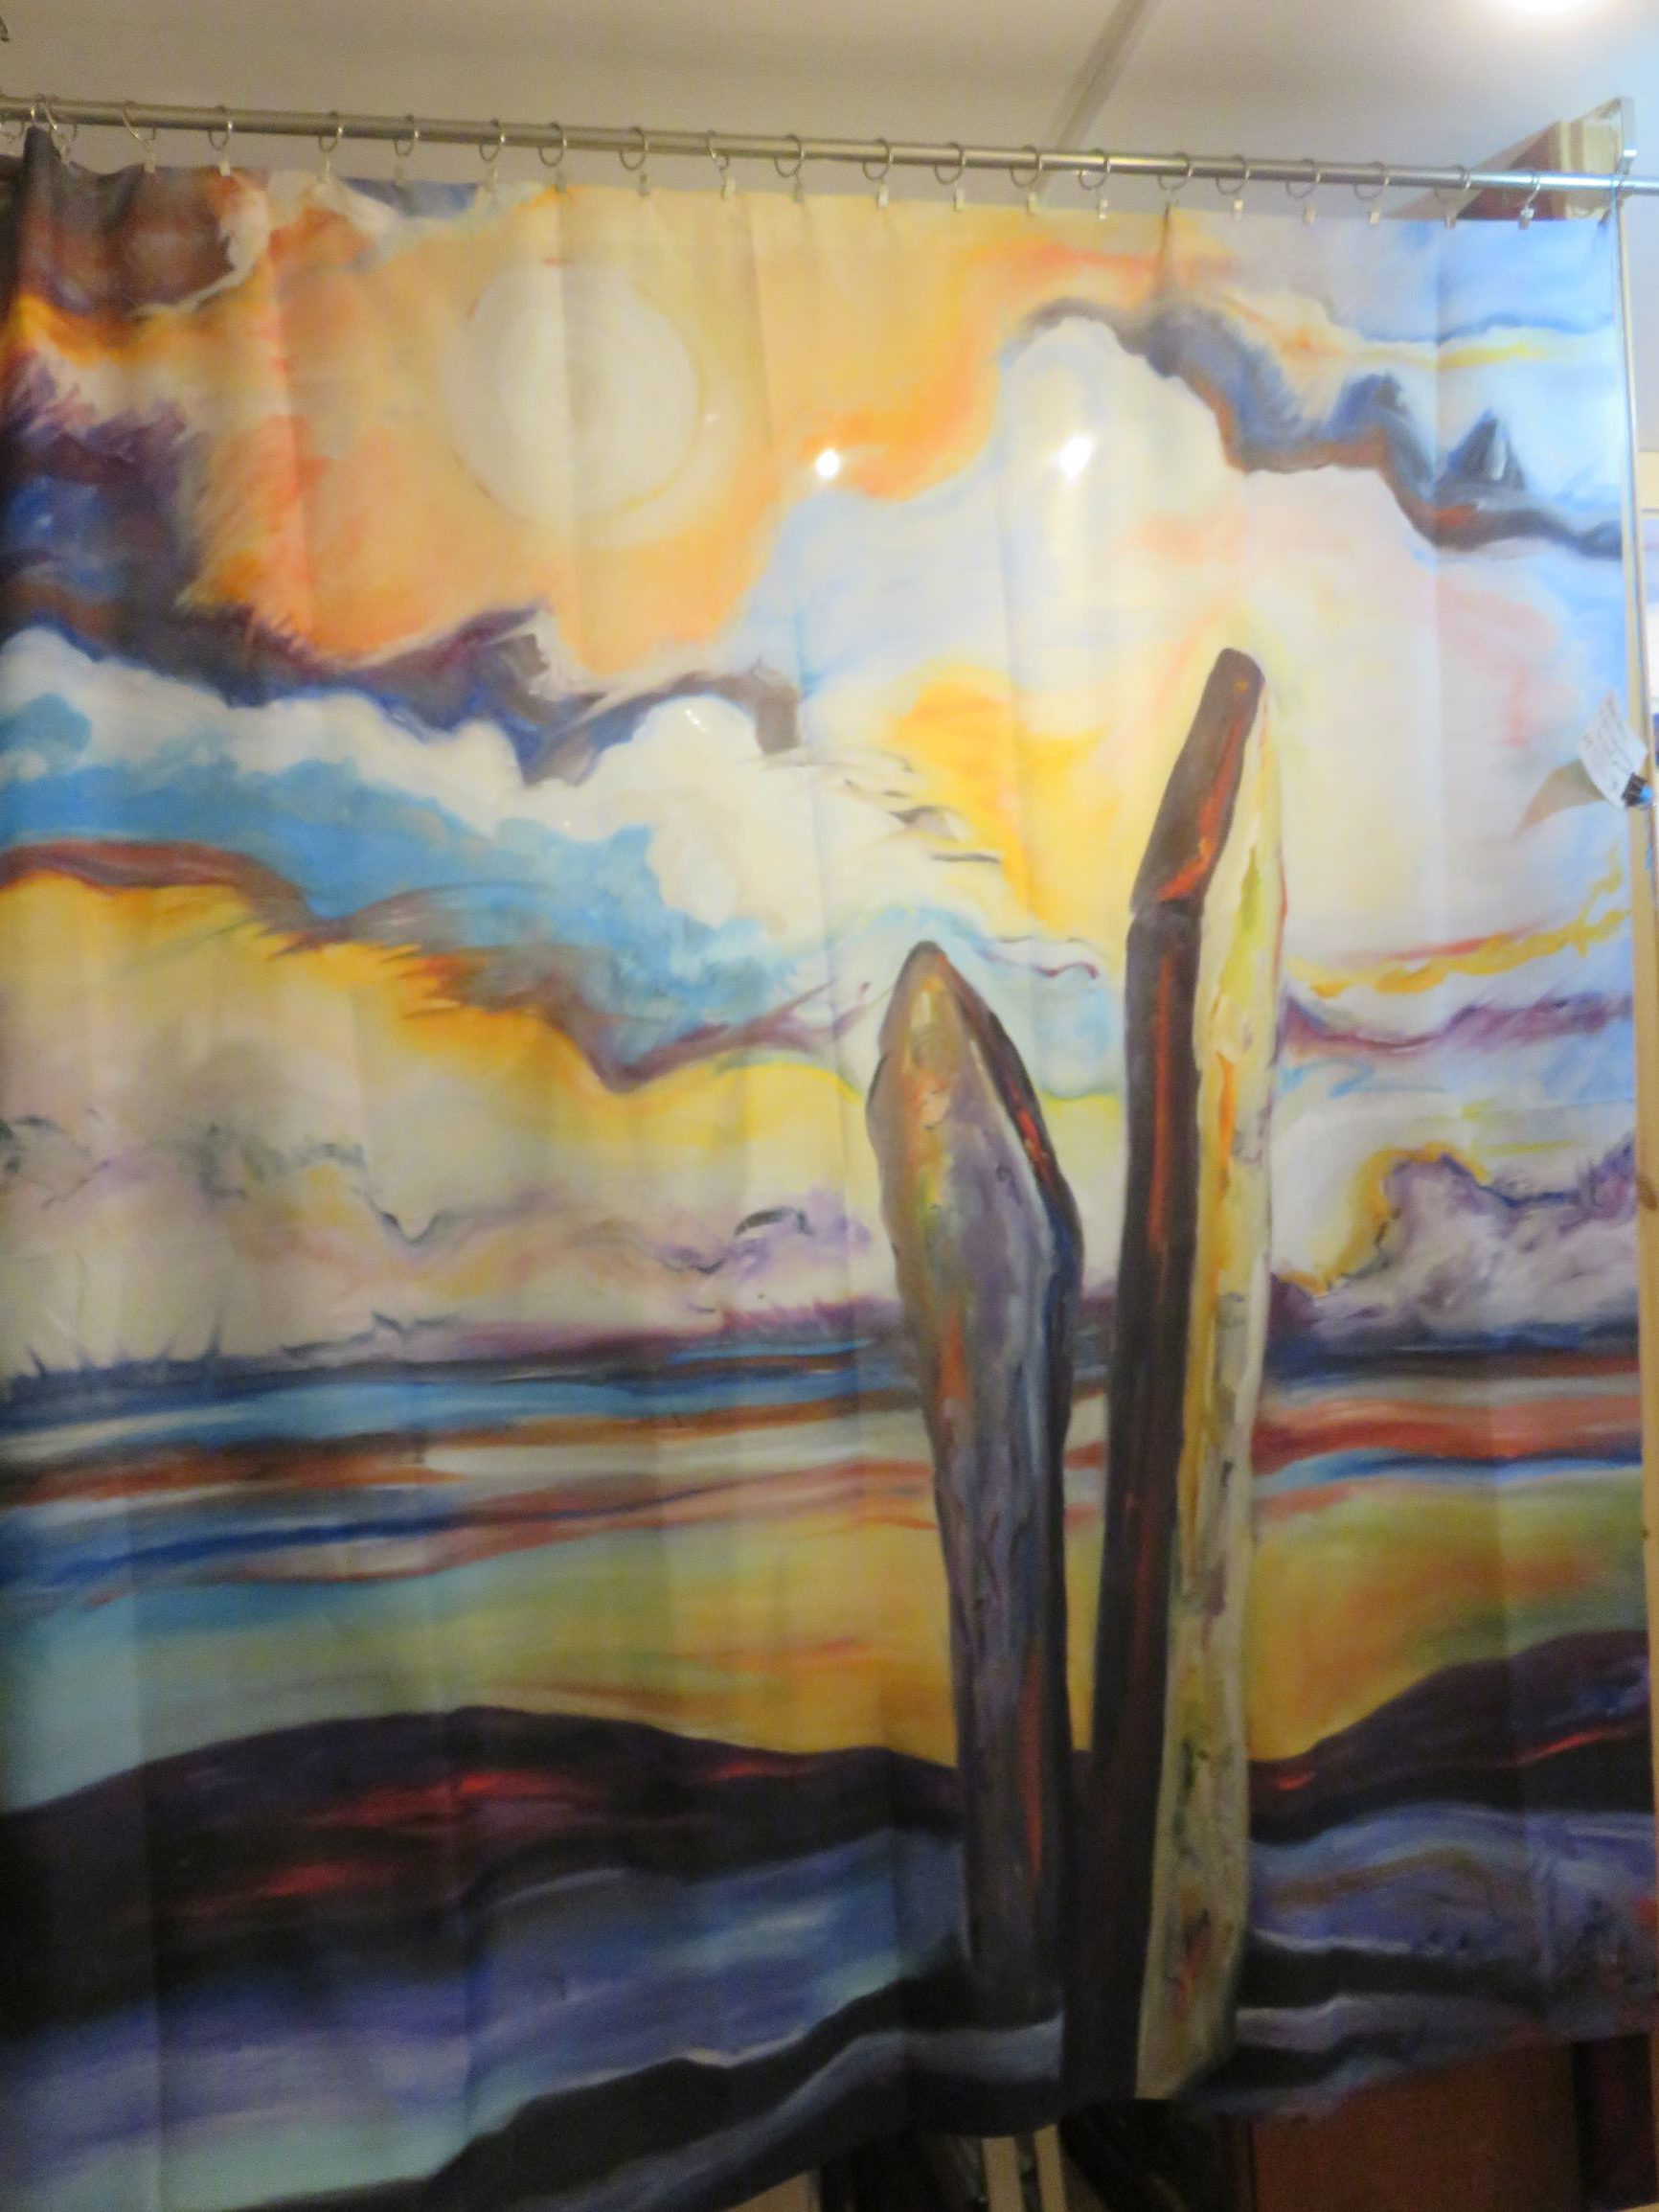 WIN an Artworks of the earth shower curtain!